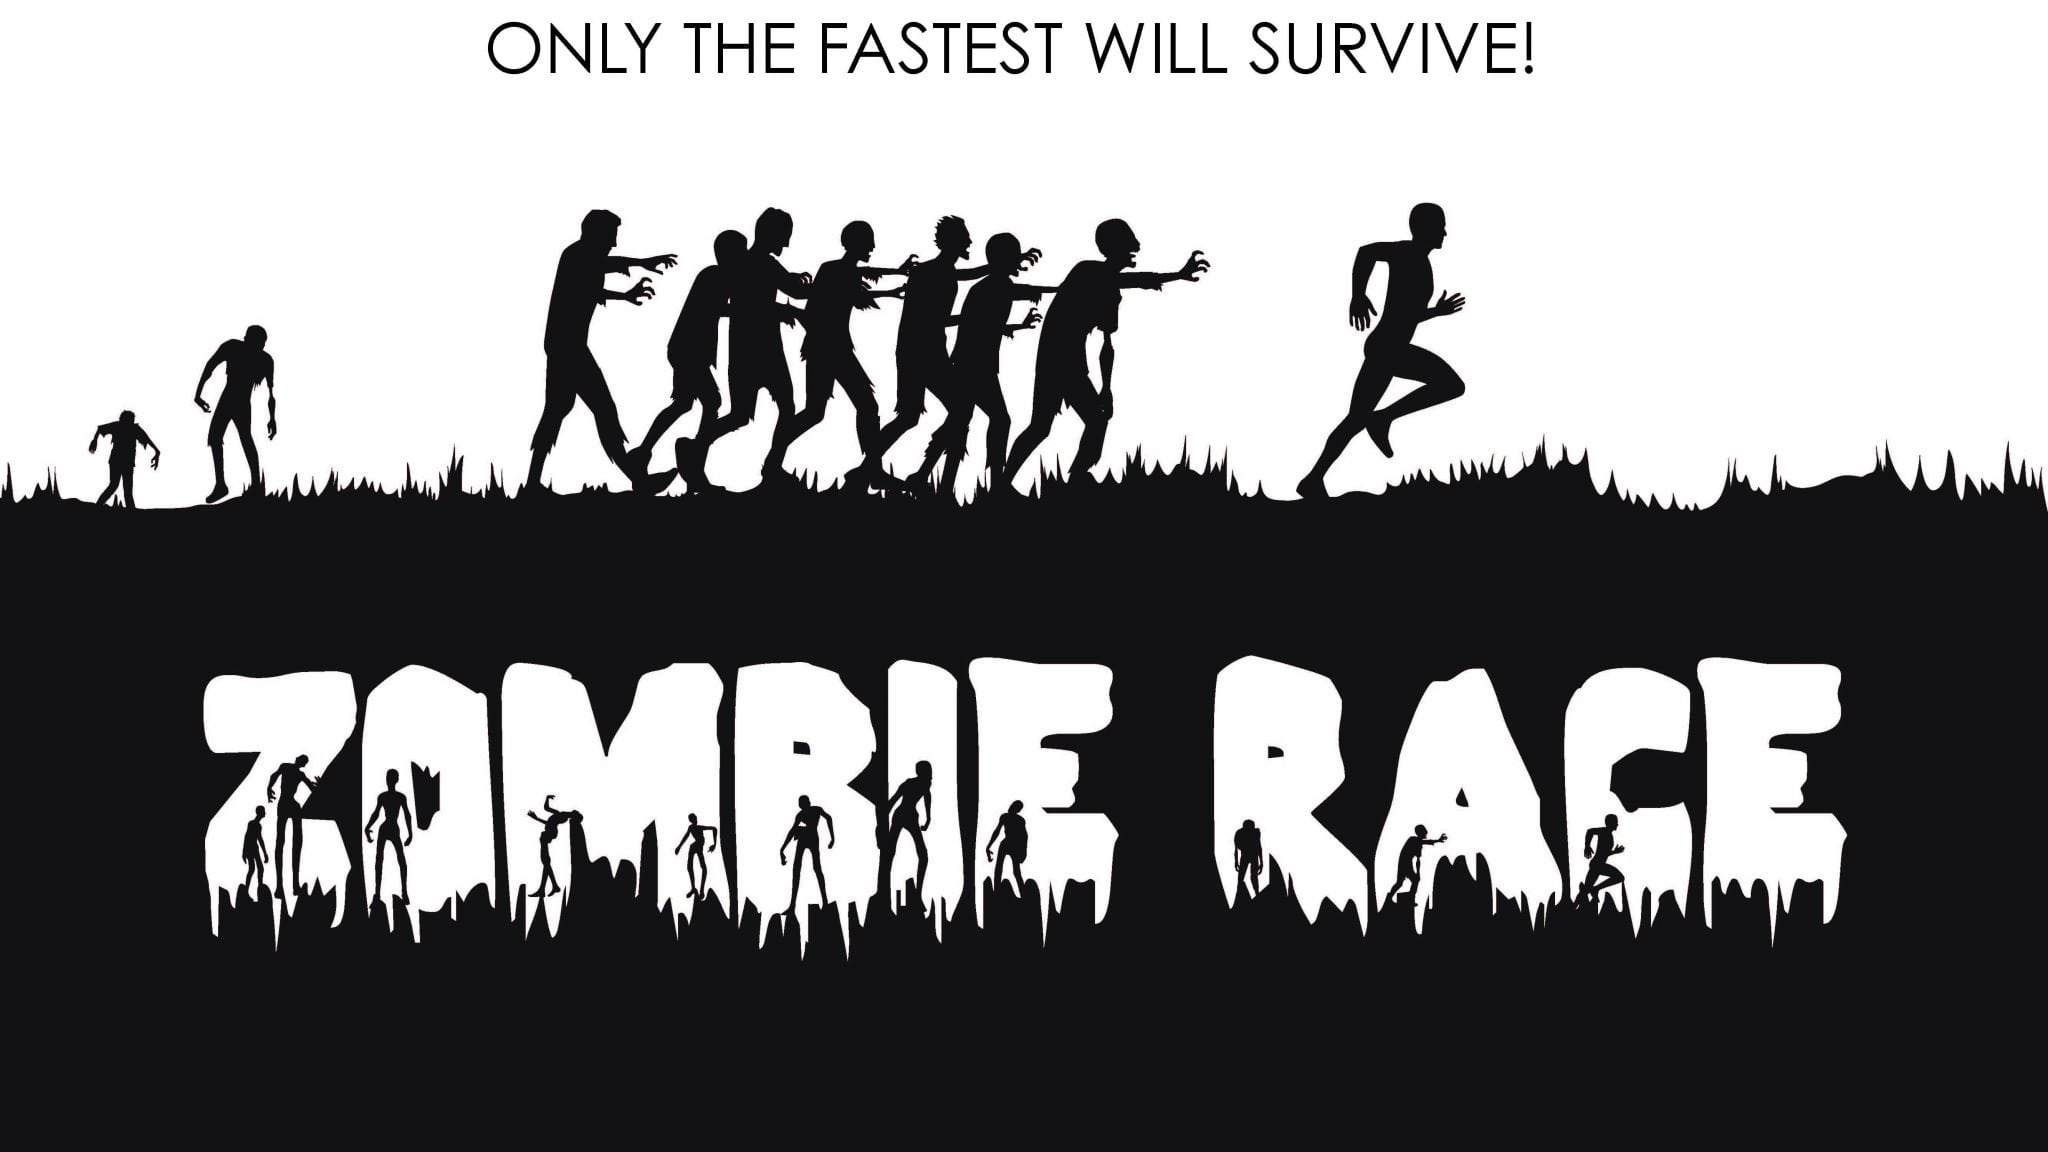 graphic of the zombie race featuring silhouettes of zombies chasing a runner